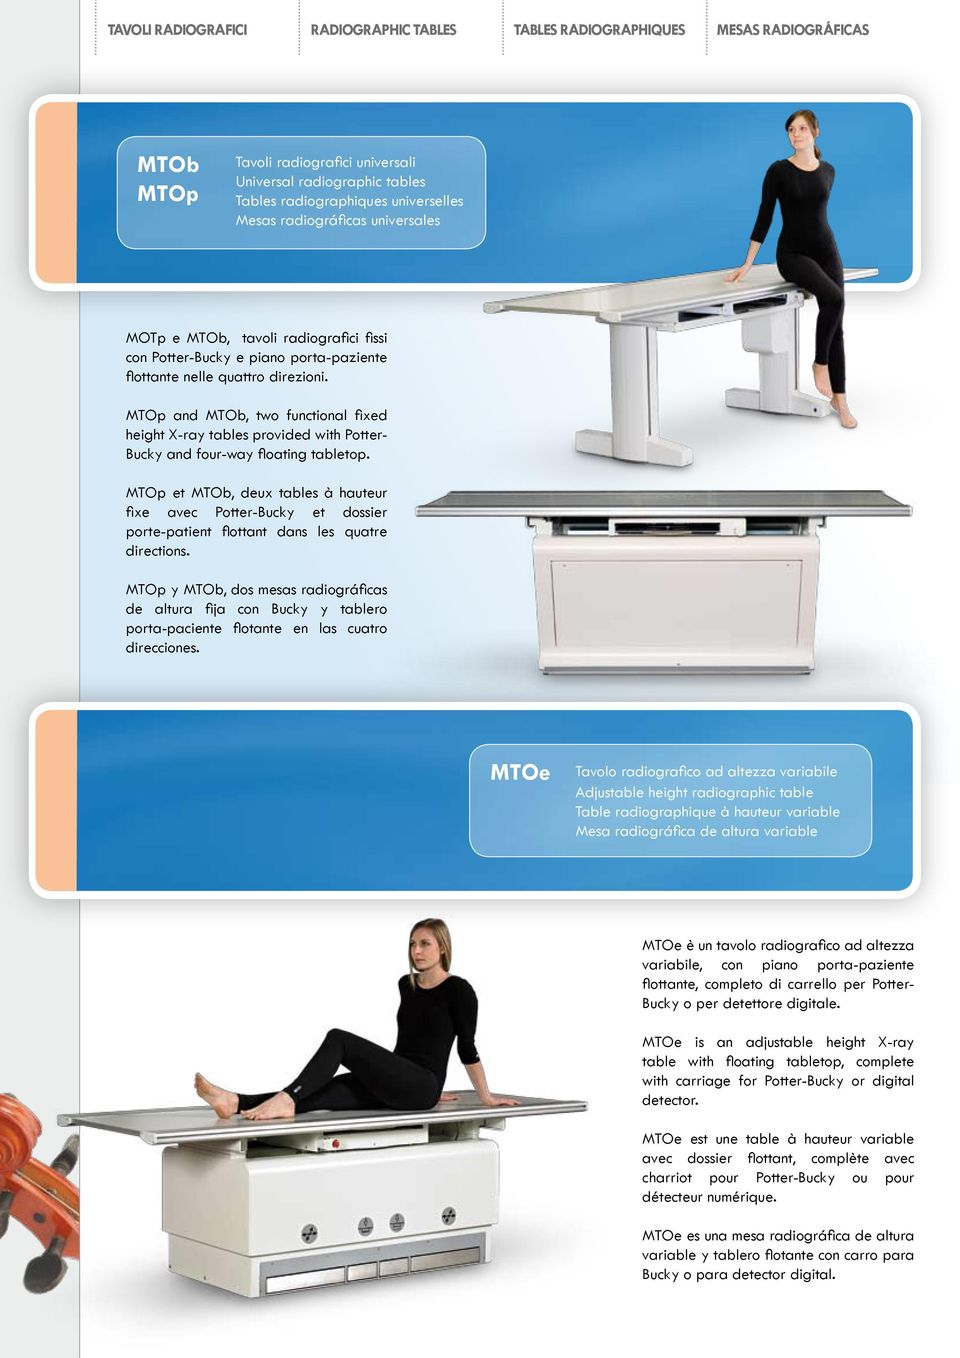 MTOp and MTOb, two functional fixed height X-ray tables provided with Potter- Bucky and four-way floating tabletop.